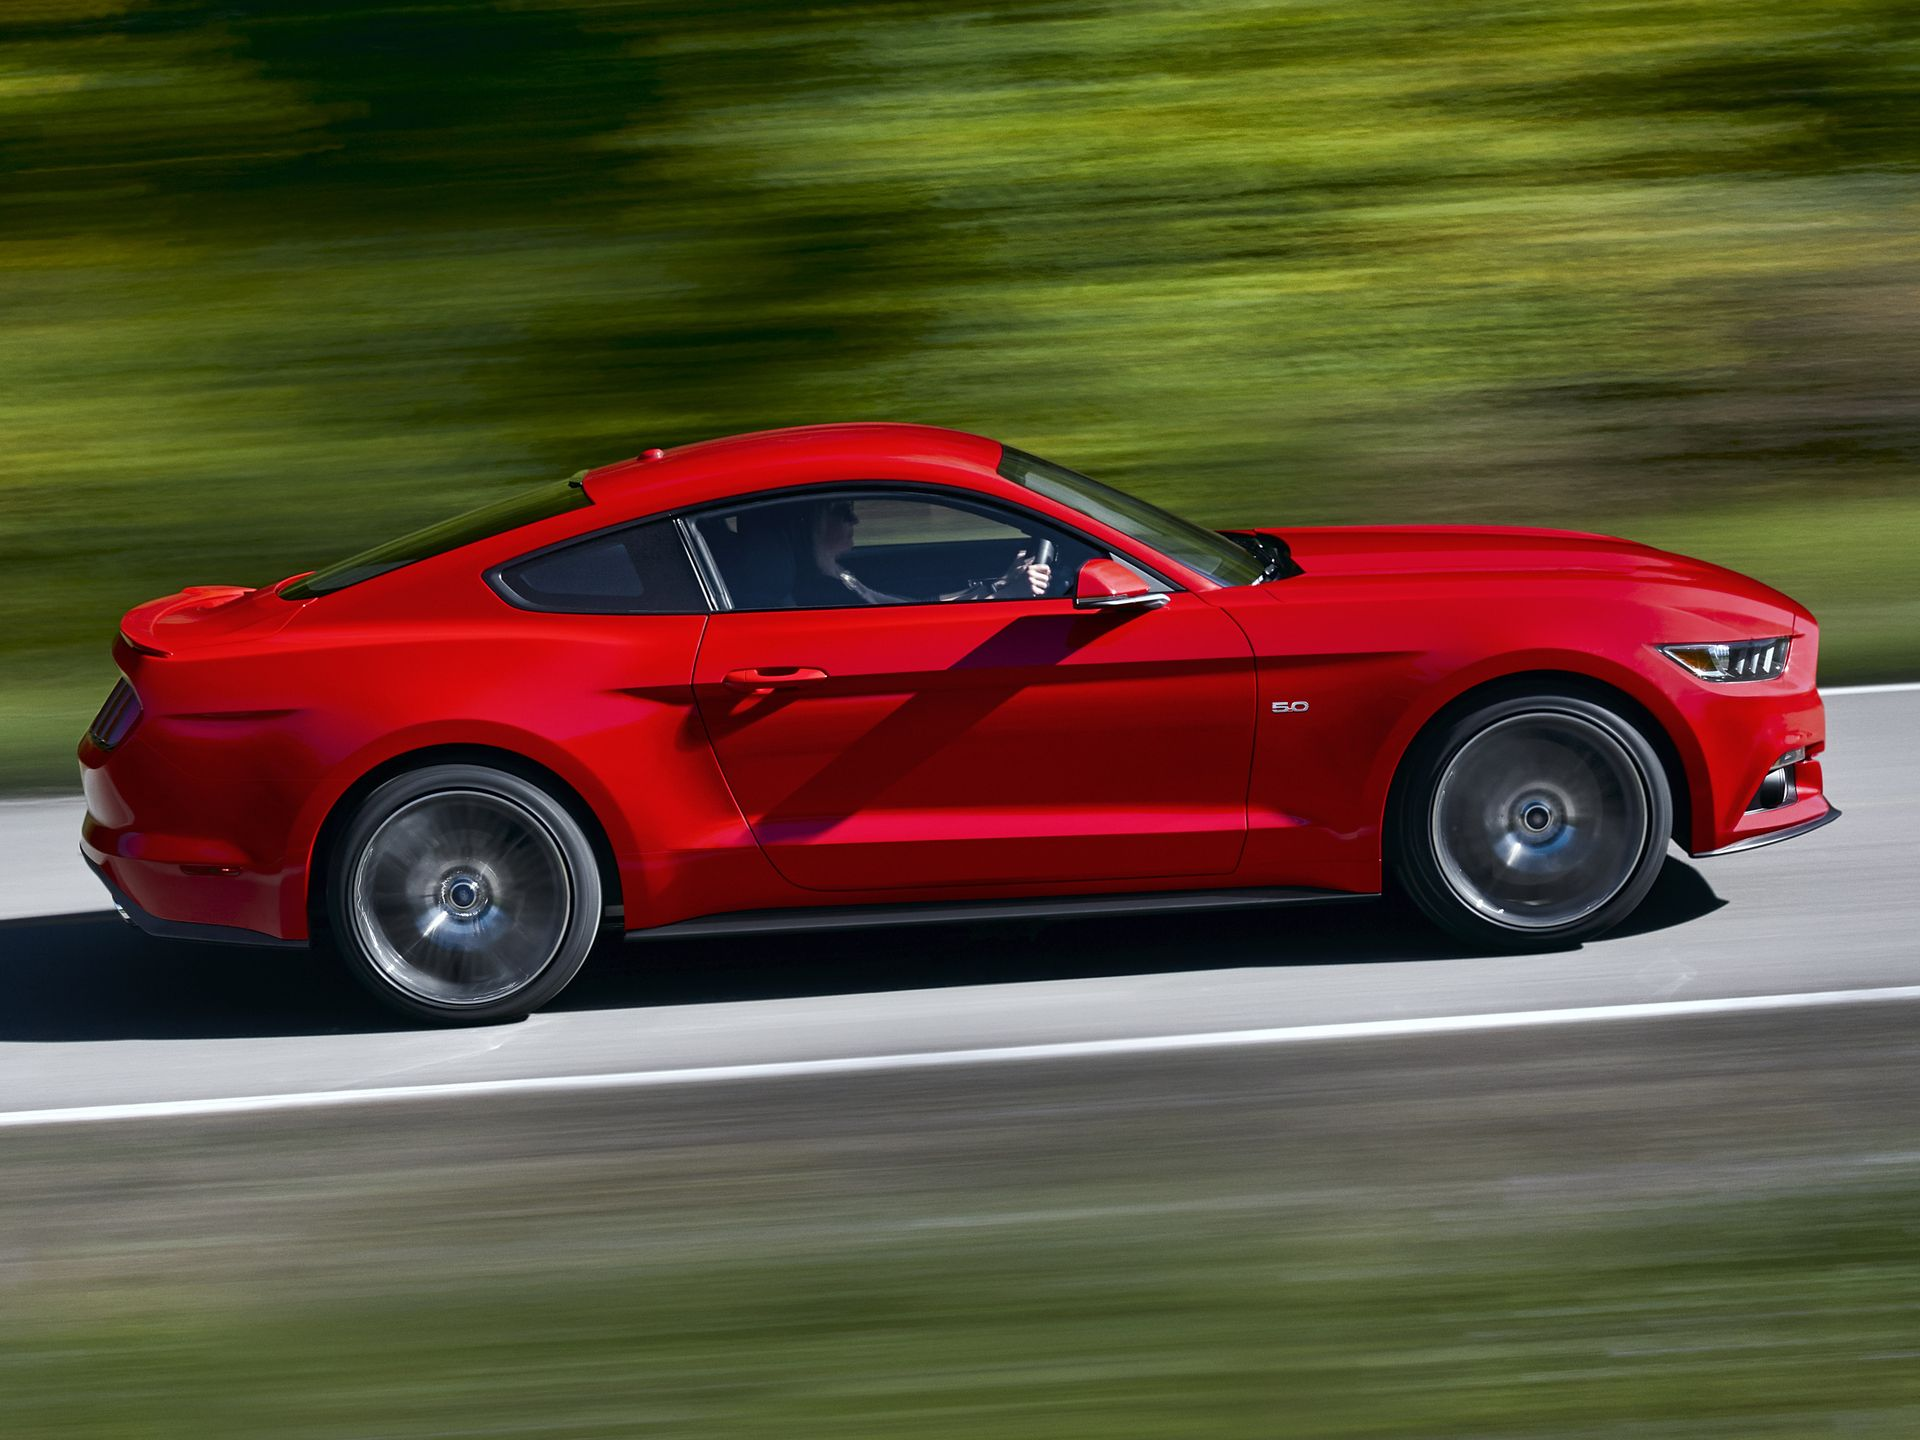 Ford Mustang The Real Thing Leaked Now With Full High Res Gallery